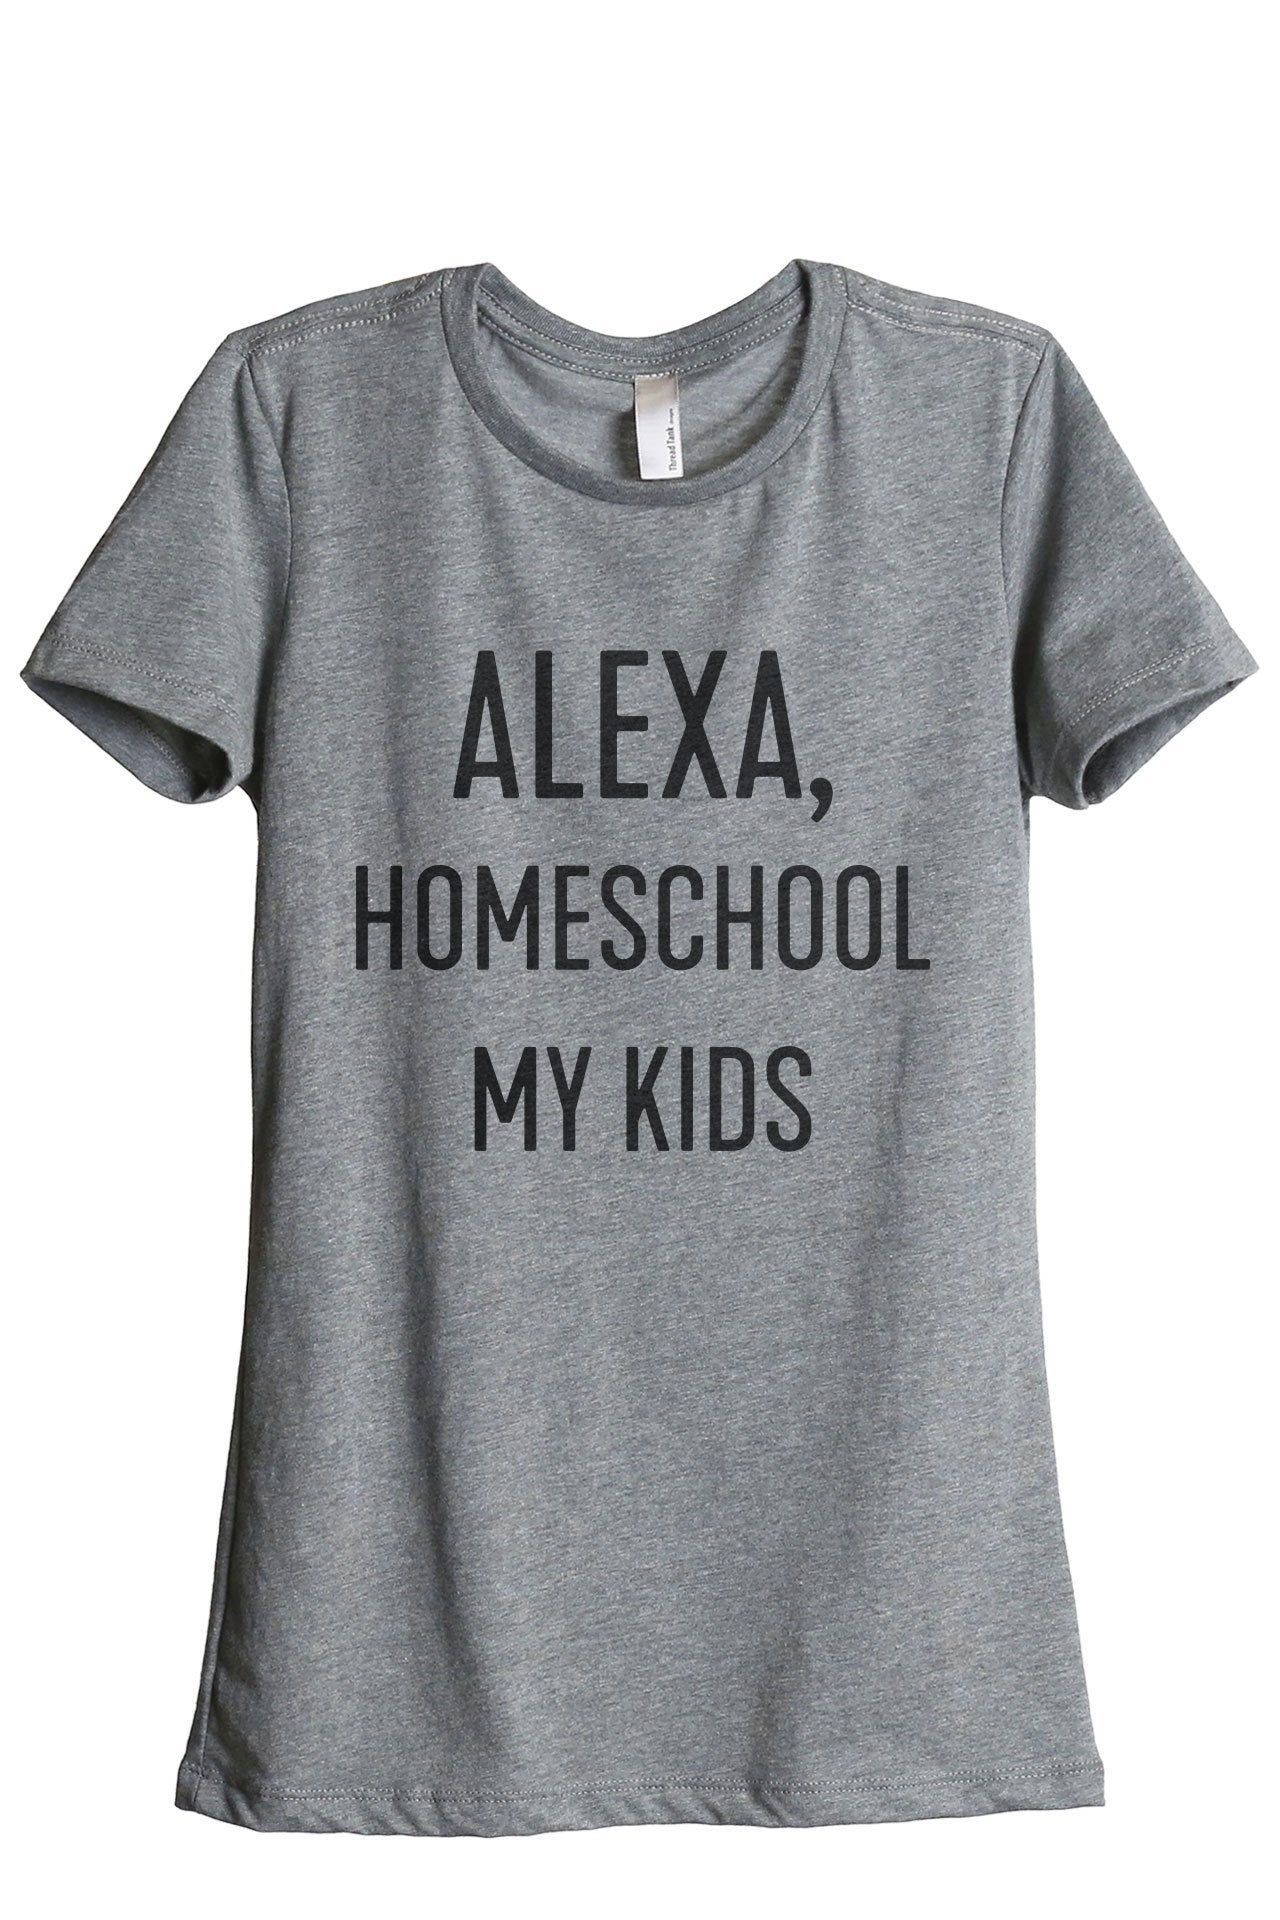 Alexa Homeschool My Kids Women's Relaxed Crewneck T-Shirt Top Tee Heather Grey